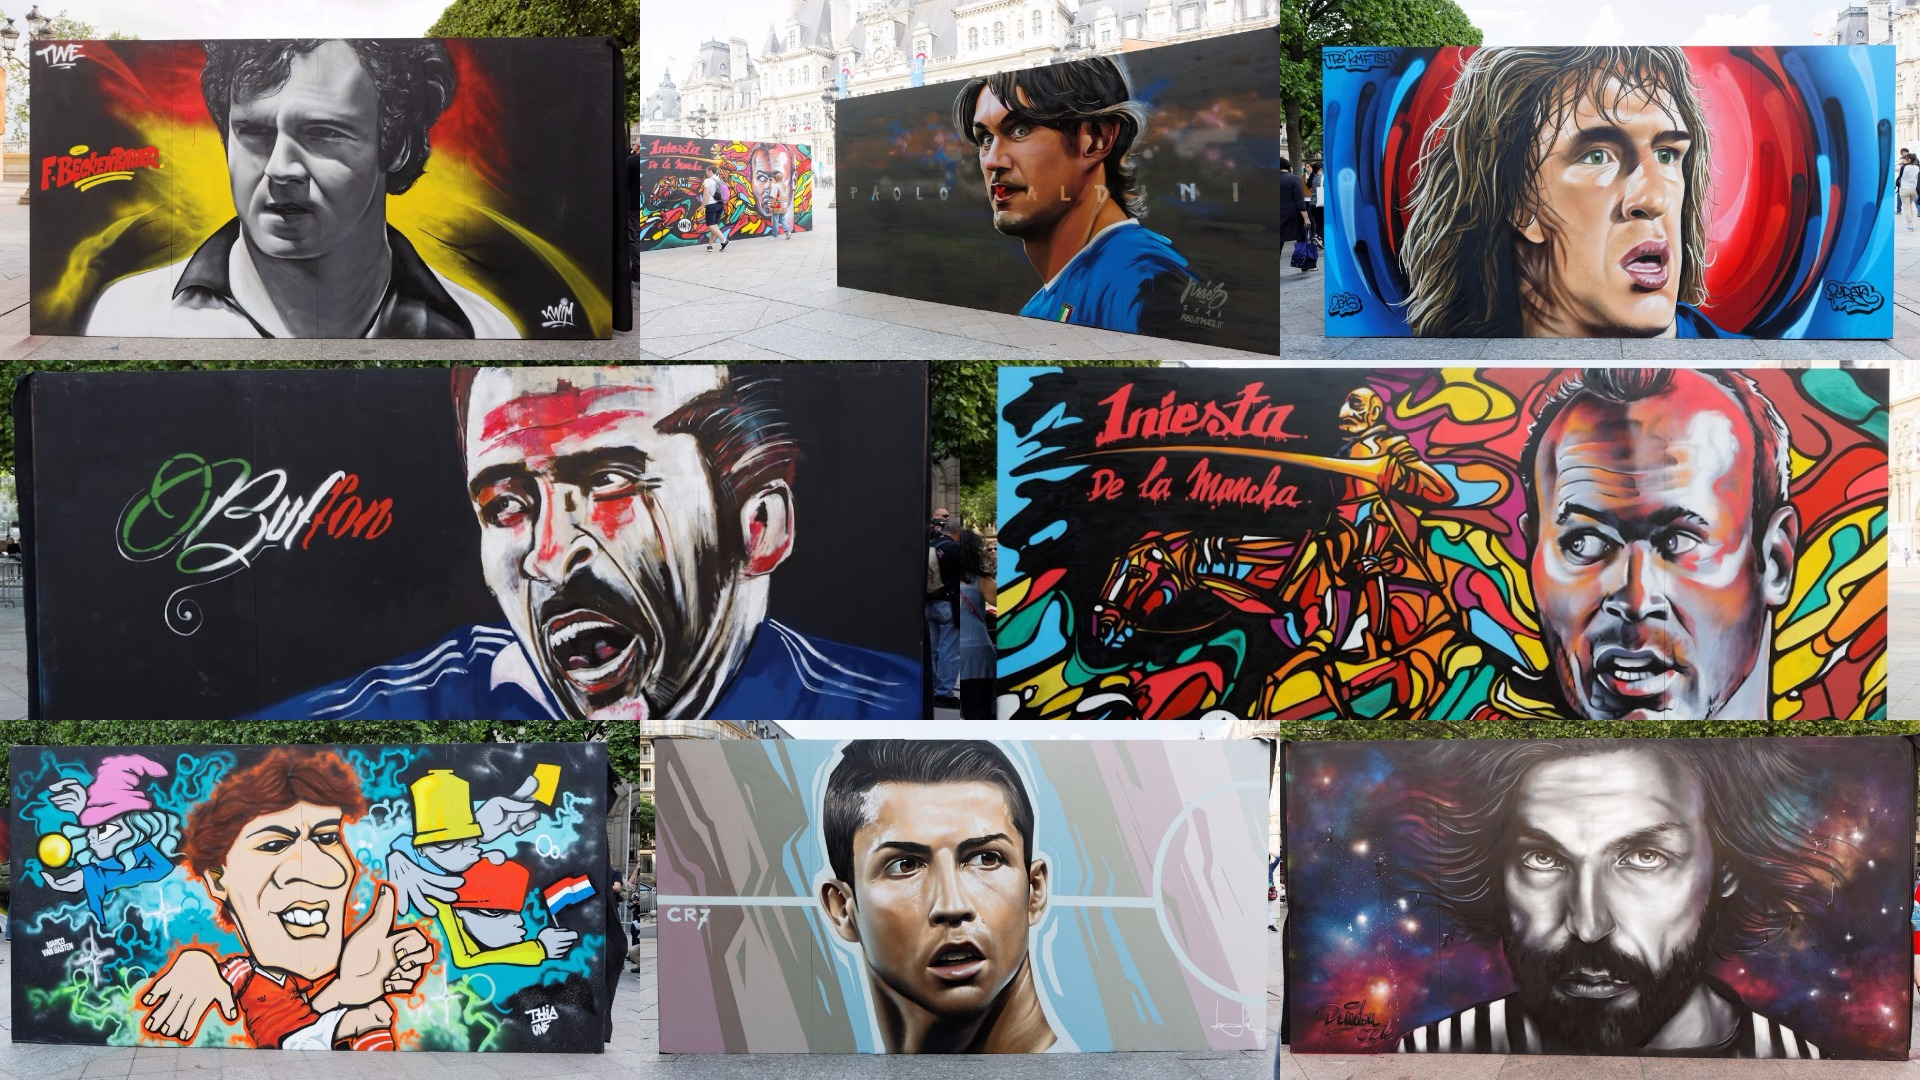 Graffiti Euro 2016 Football legends featured collage